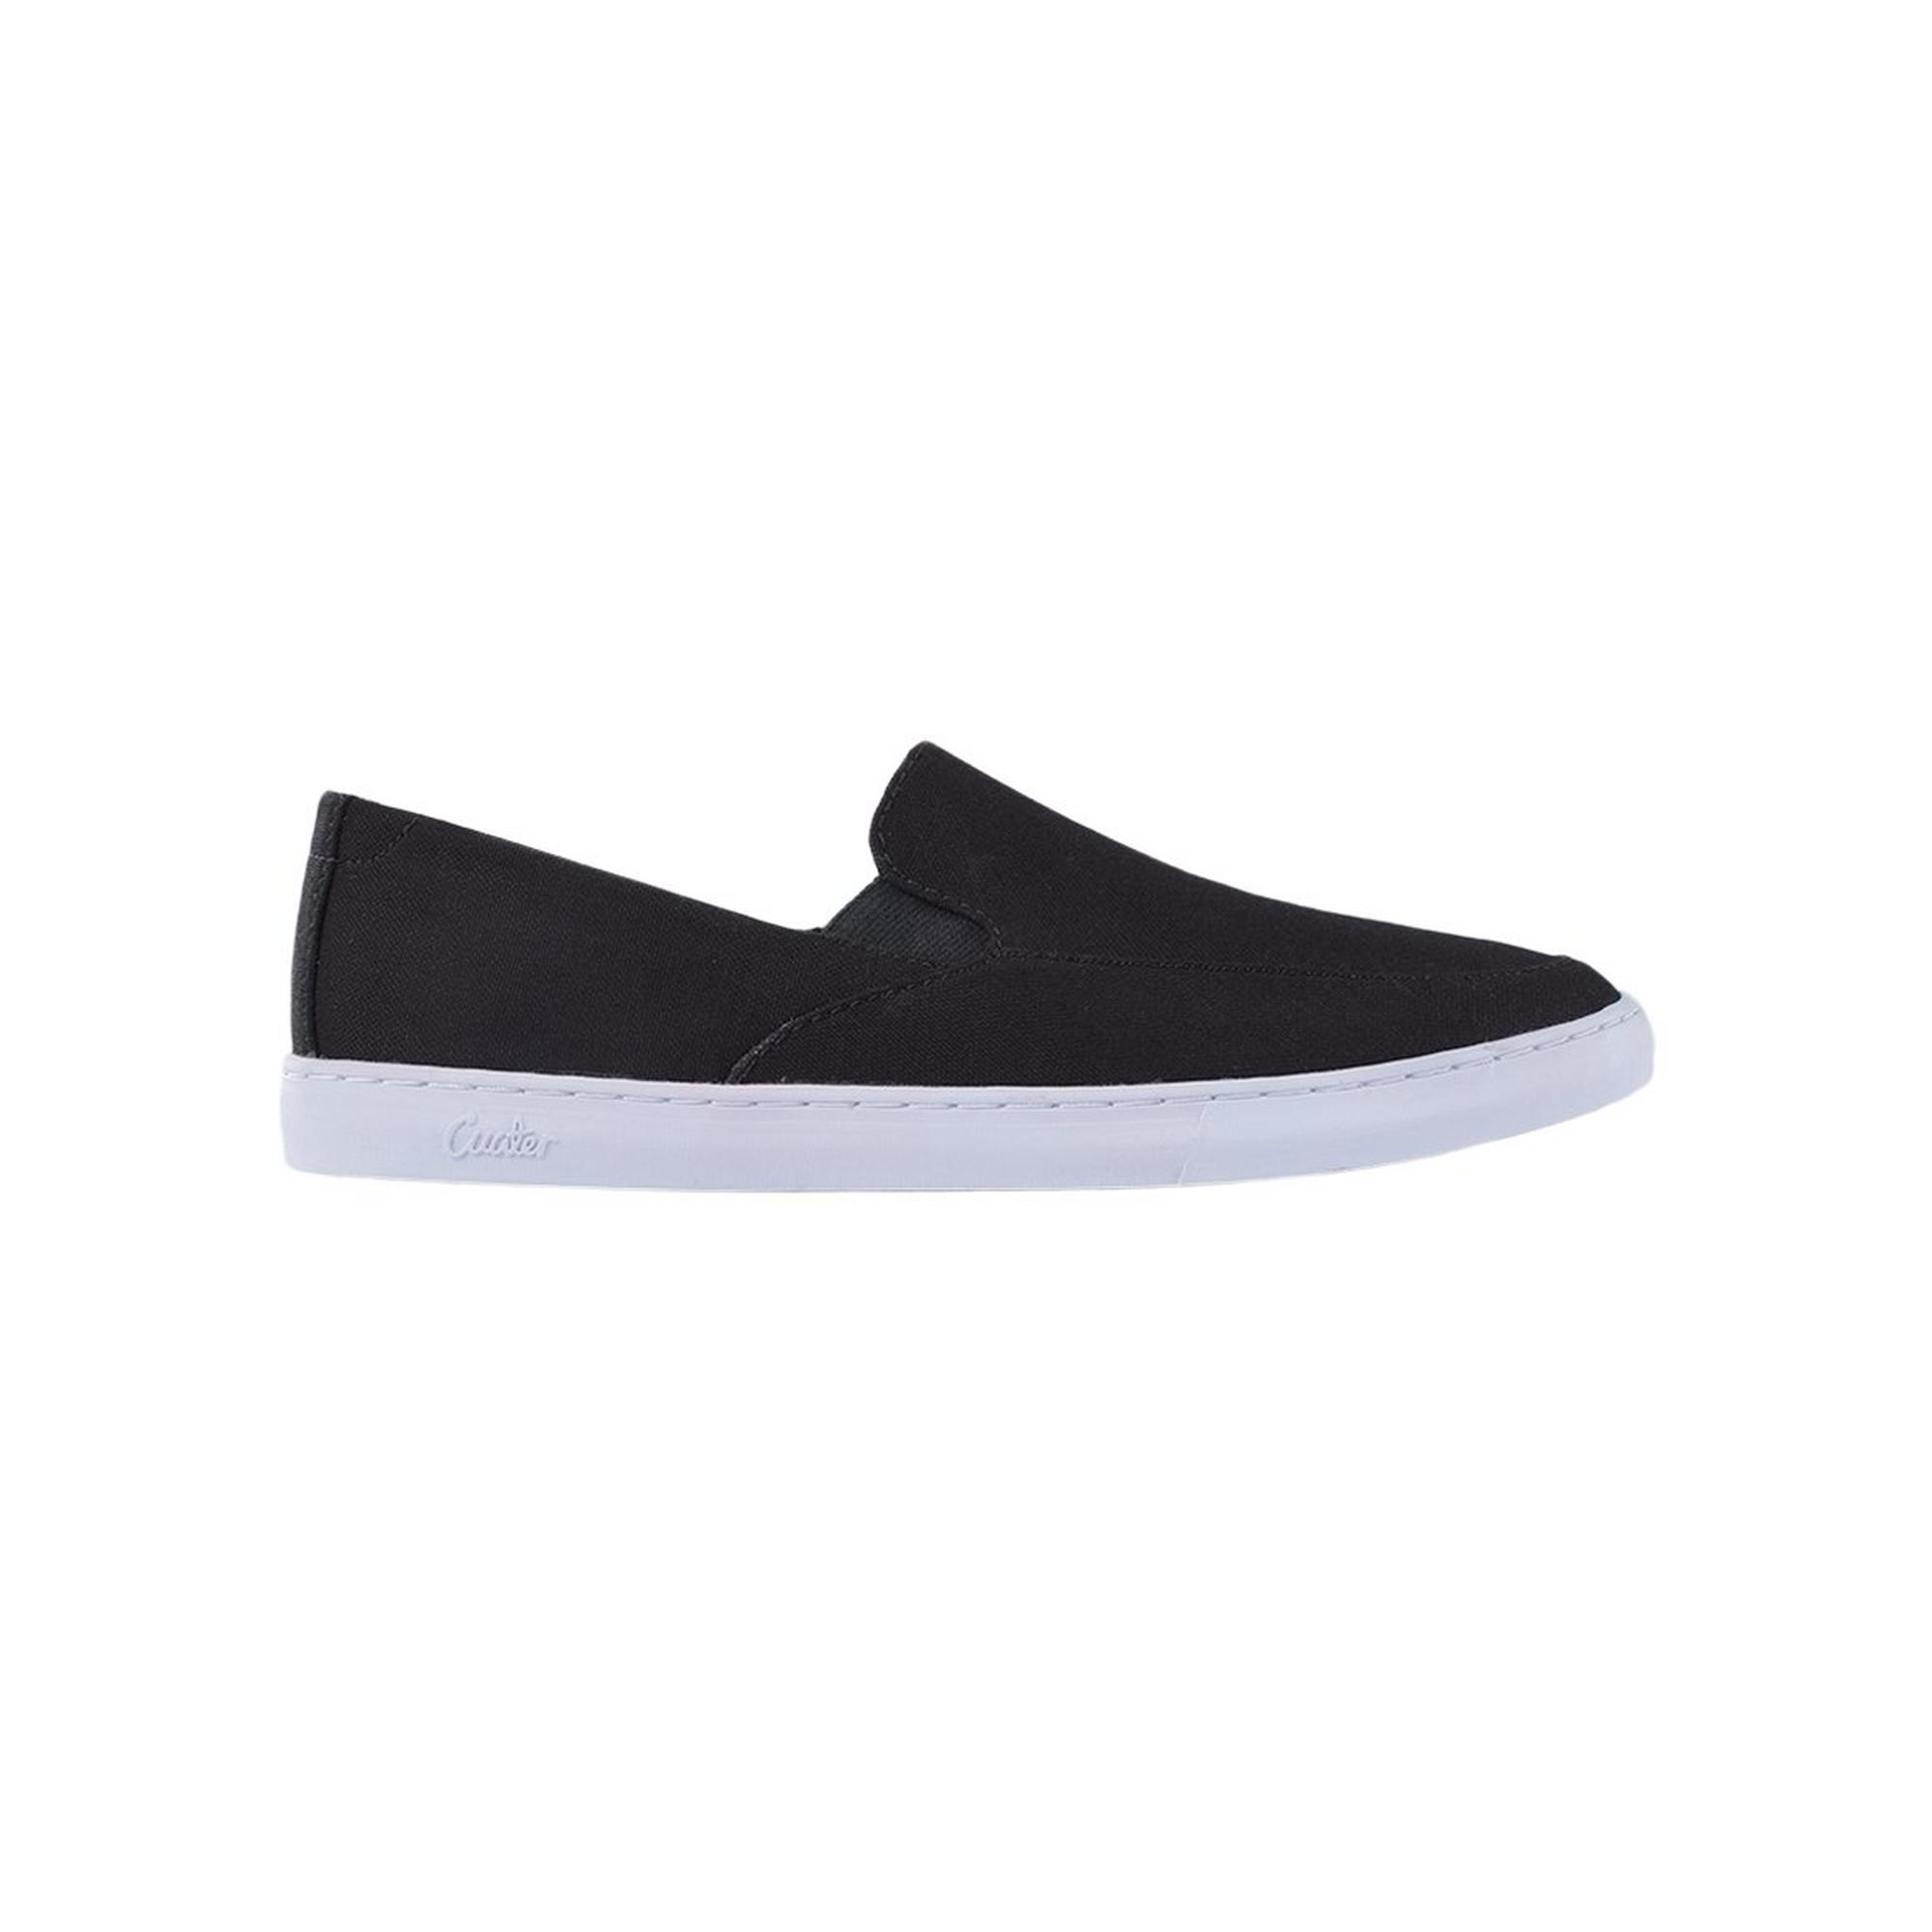 Men's Tracers Slip On Shoe - Black